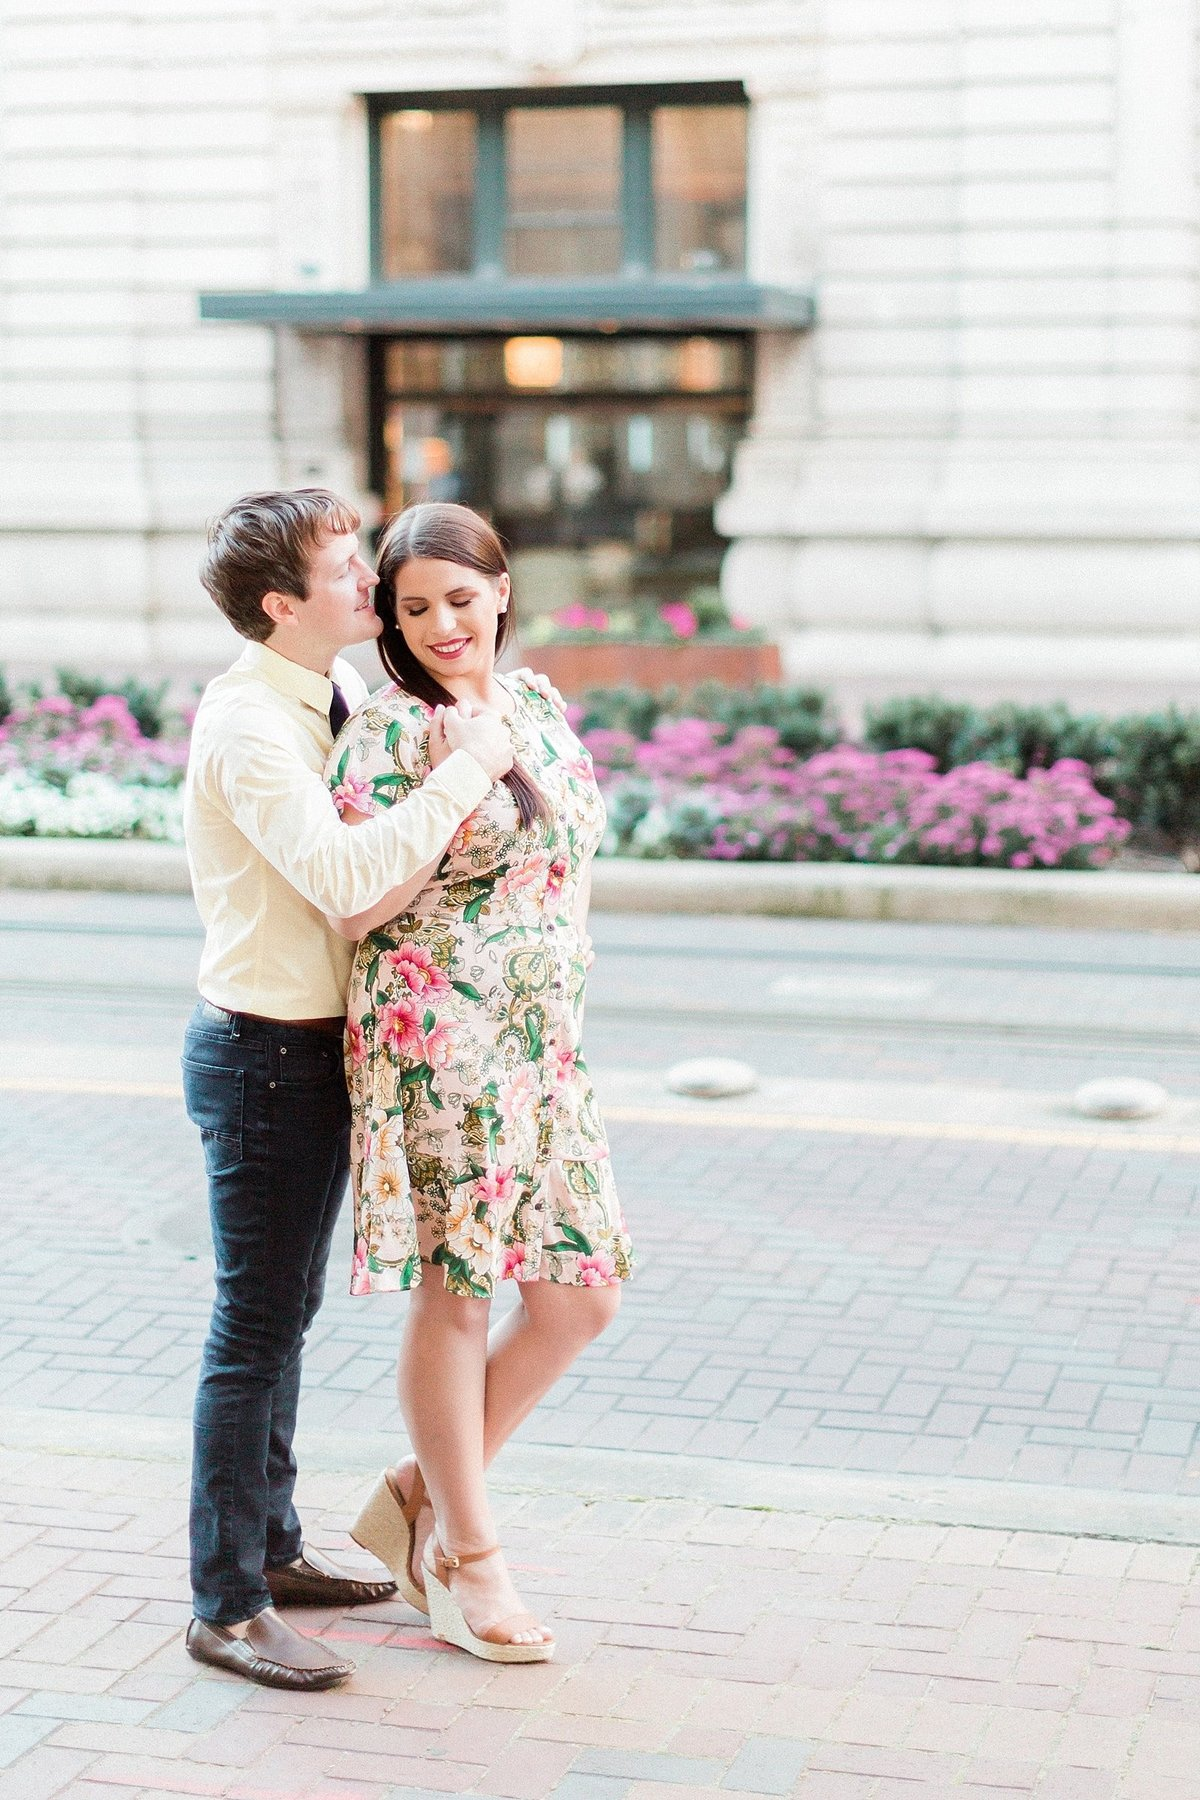 Downtown Houston Engagement Session photographed by Houston Wedding Photographer, Alicia Yarrish of Alicia Yarrish Photography